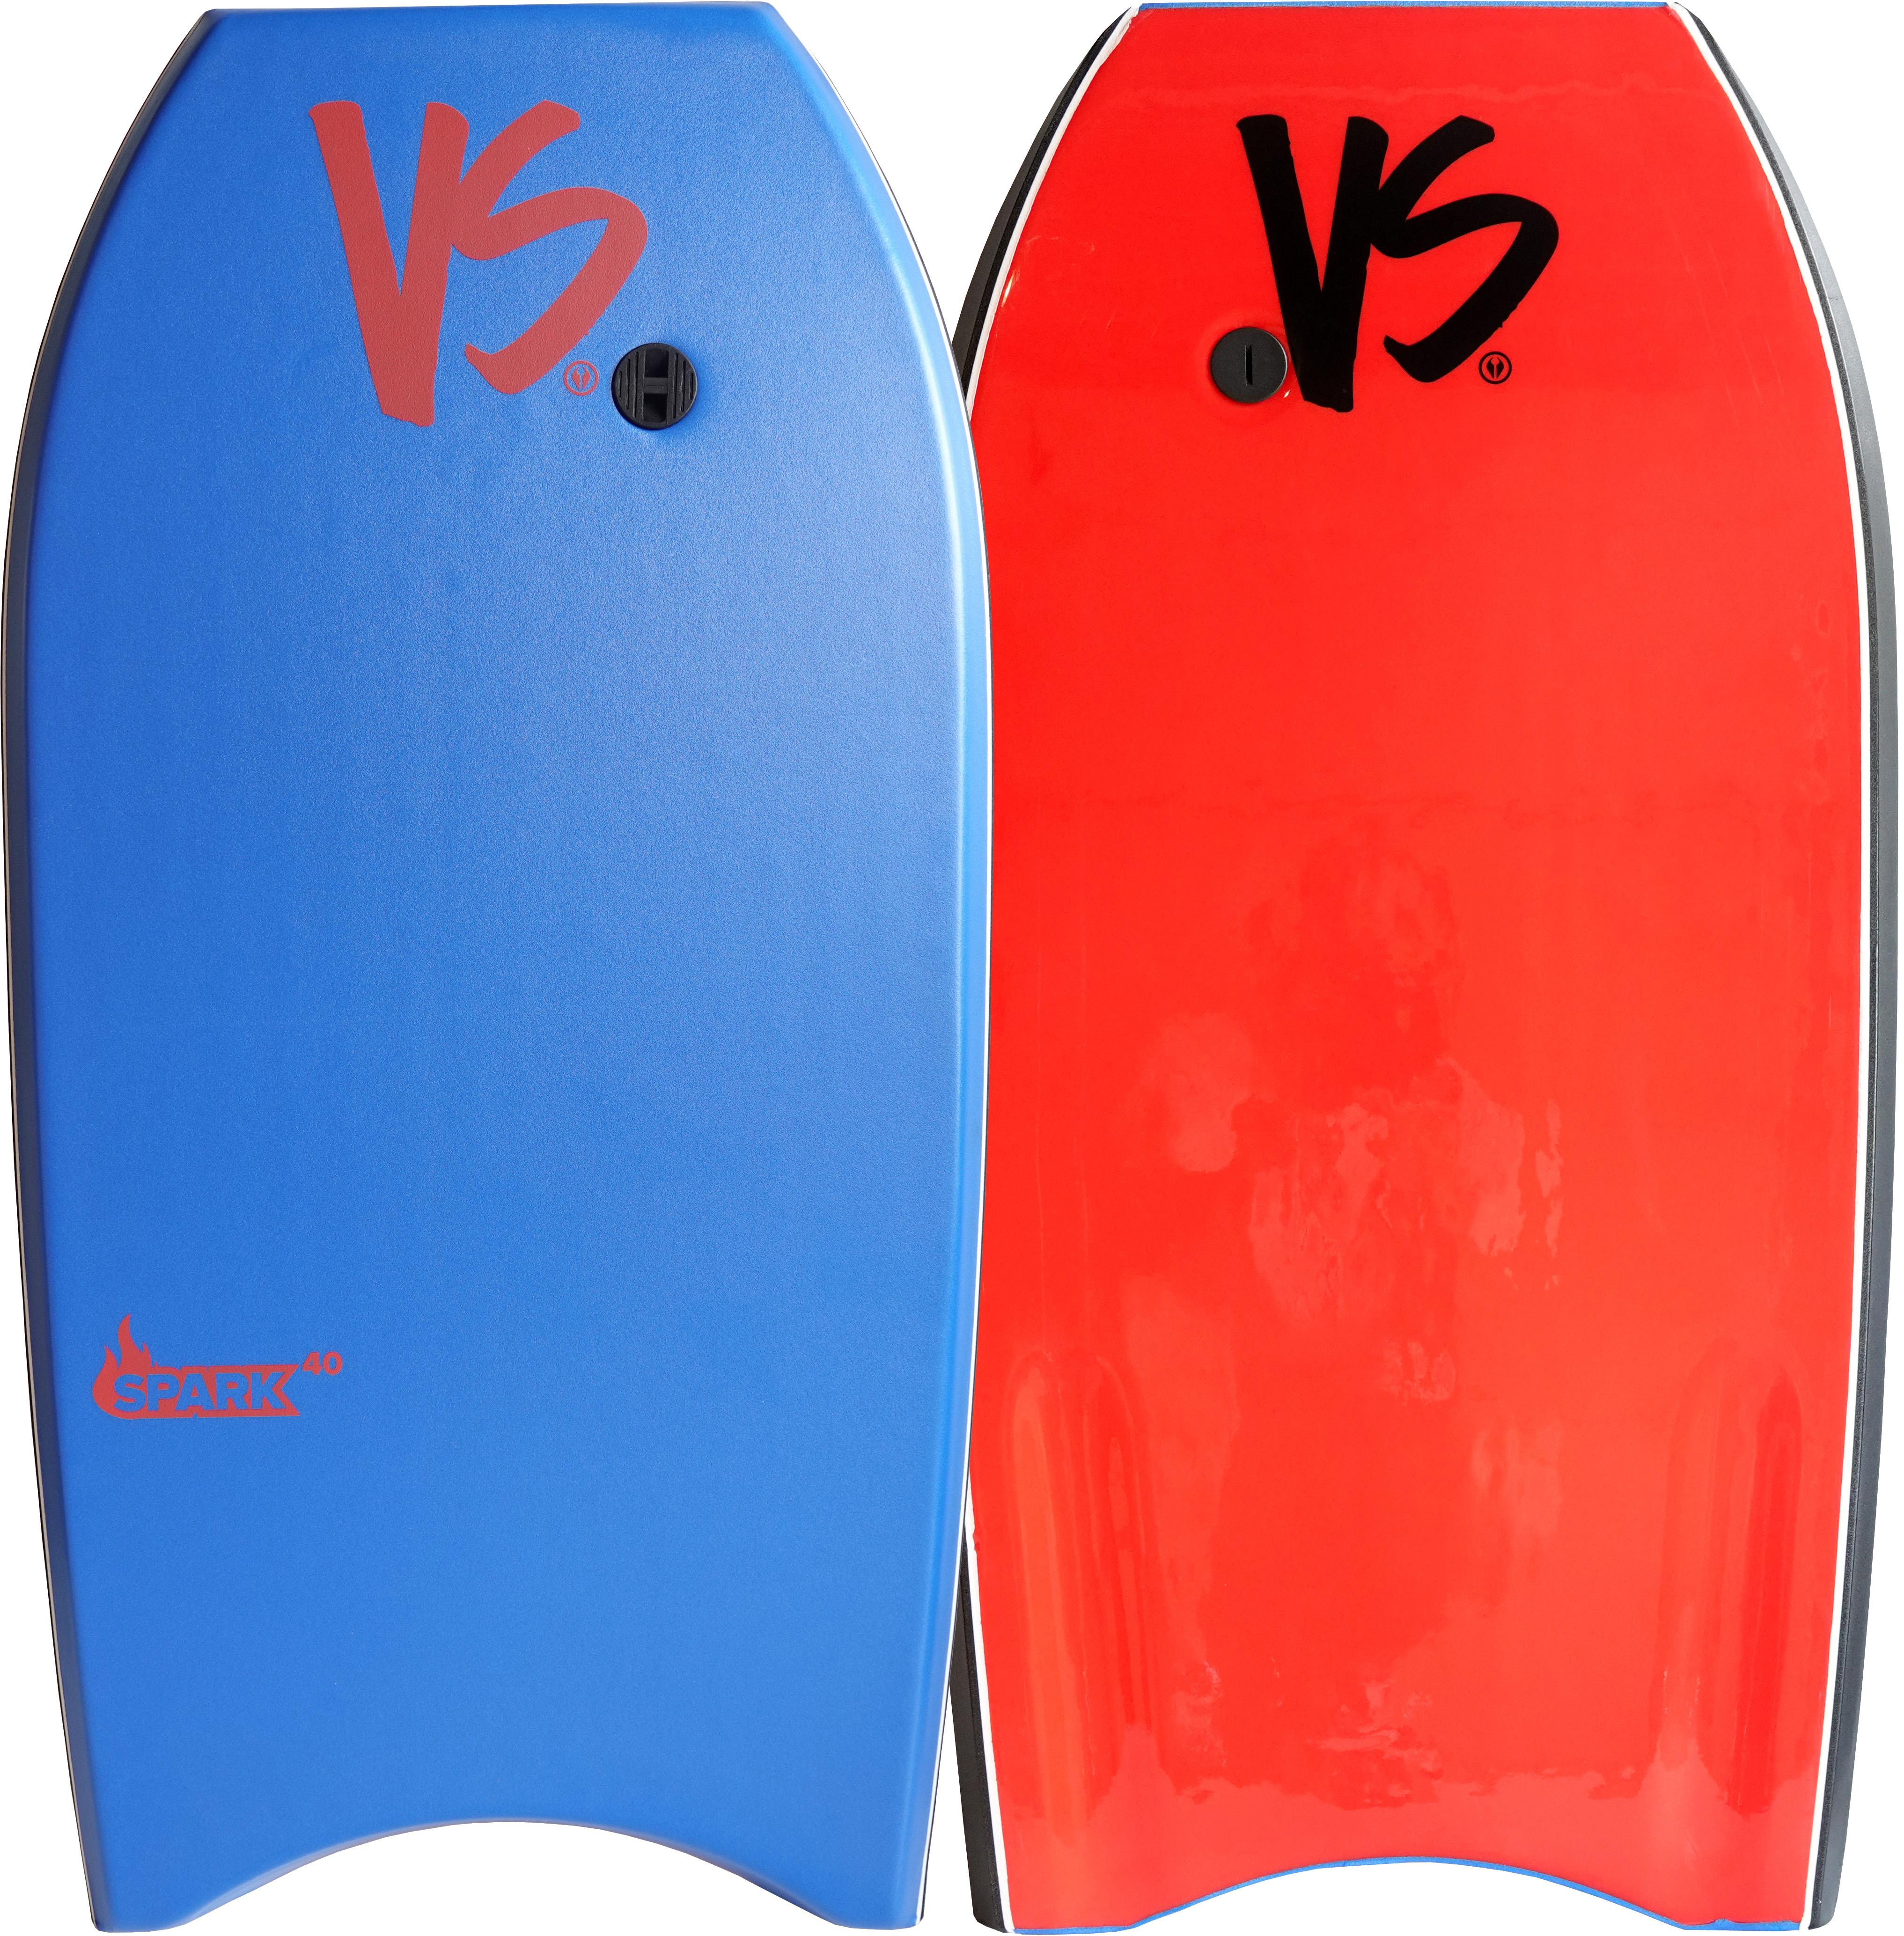 VS BODYBOARDS Spark EPS Core Bodyboard - 2018 19 Model 811fba9e96a32